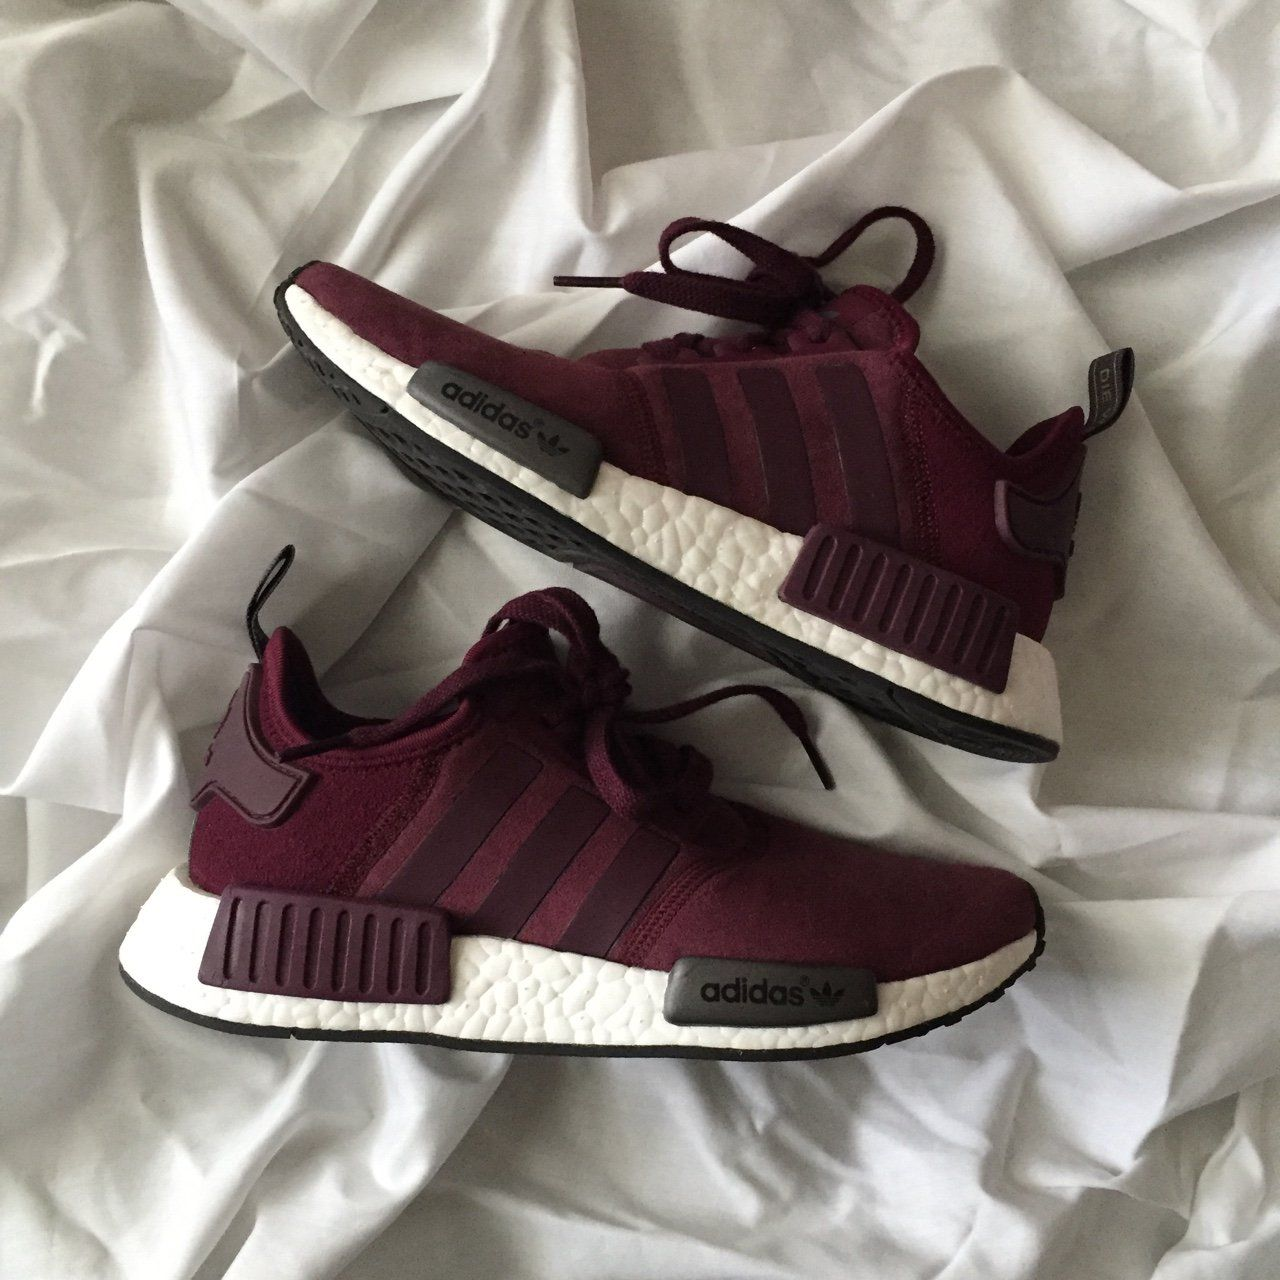 1fa32406cca26 Adidas Originals NMD Suede sneakers in maroon. Women s size 6.5 but will  best fit a